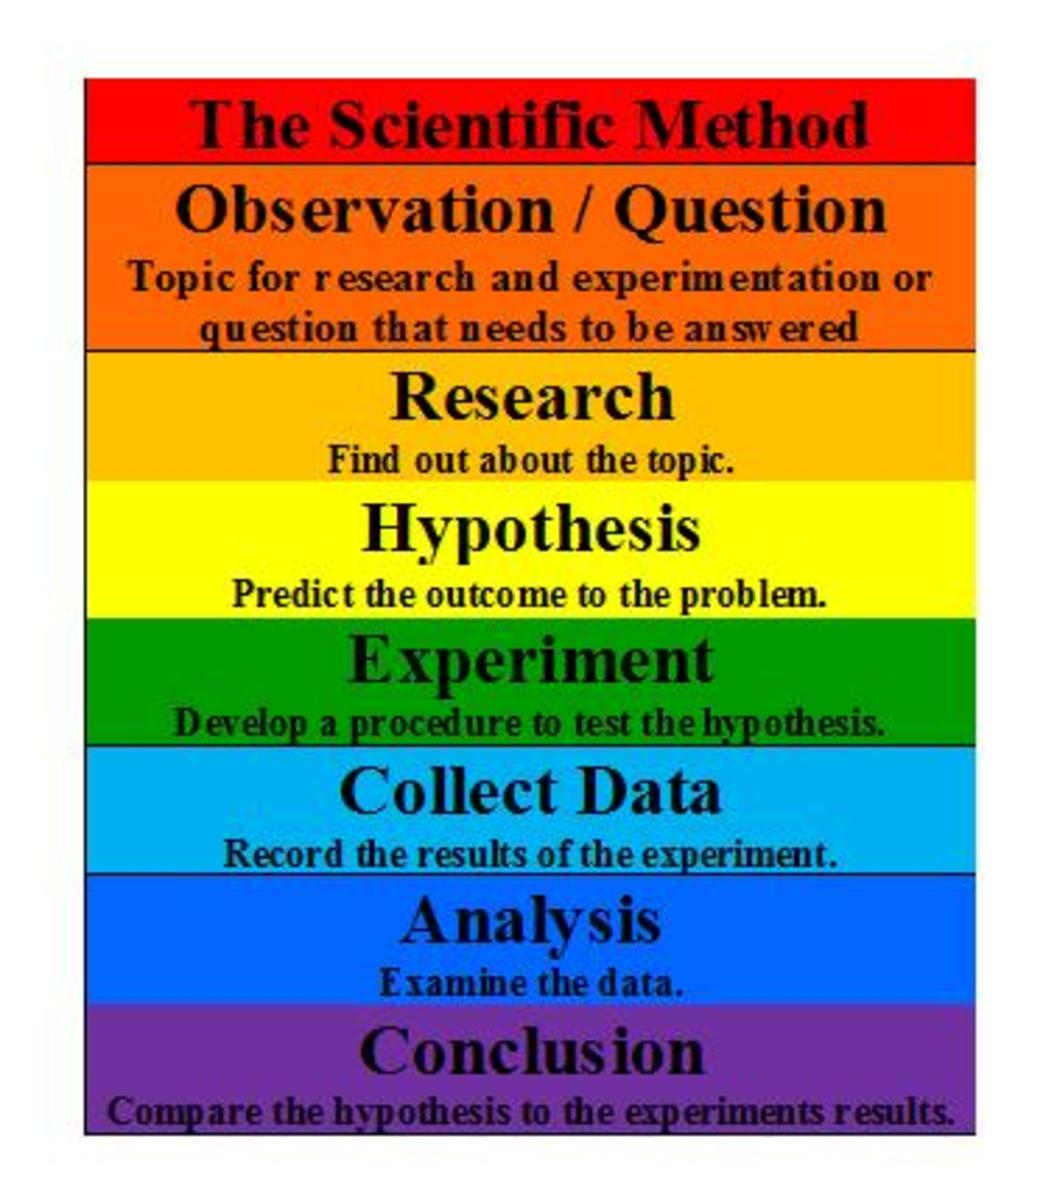 scientific thinking and the scientific method philosophy essay Scientific method should be distinguished from the aims and products of science, such as knowledge, predictions, or control scientific method should also be distinguished from meta-methodology, which includes the values and justifications behind a particular characterization of scientific method.